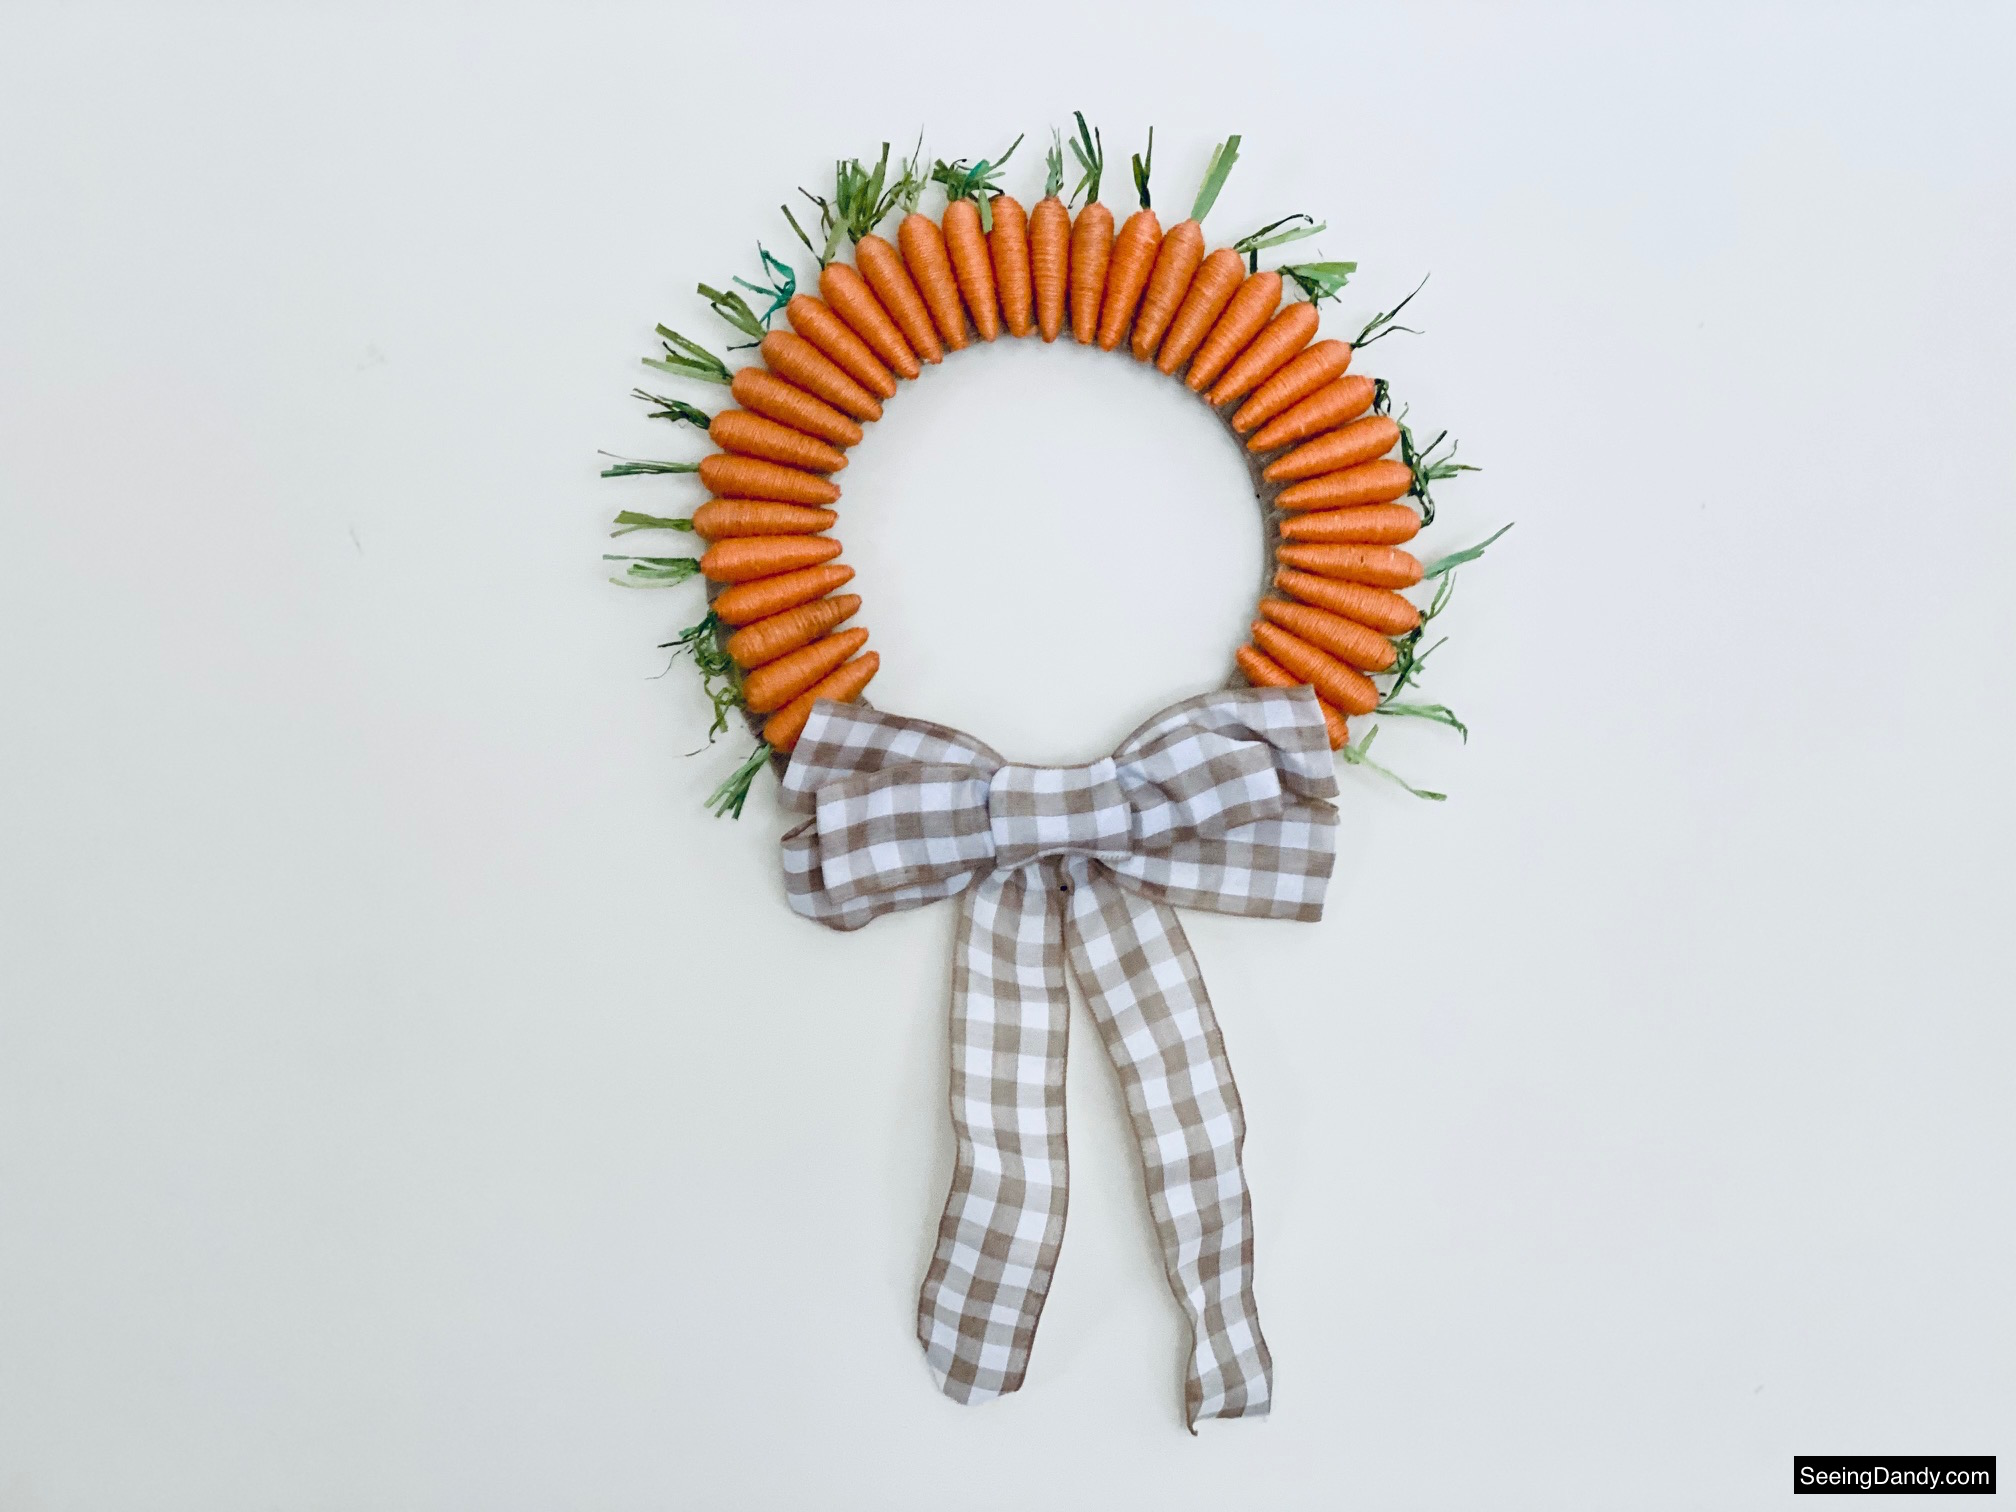 carrot wreath, diy wreath, easter wreath, dollar tree craft, easy crafts, easter decorating, spring wreath, springtime decor, home decorating, farmhouse style, porch wreath